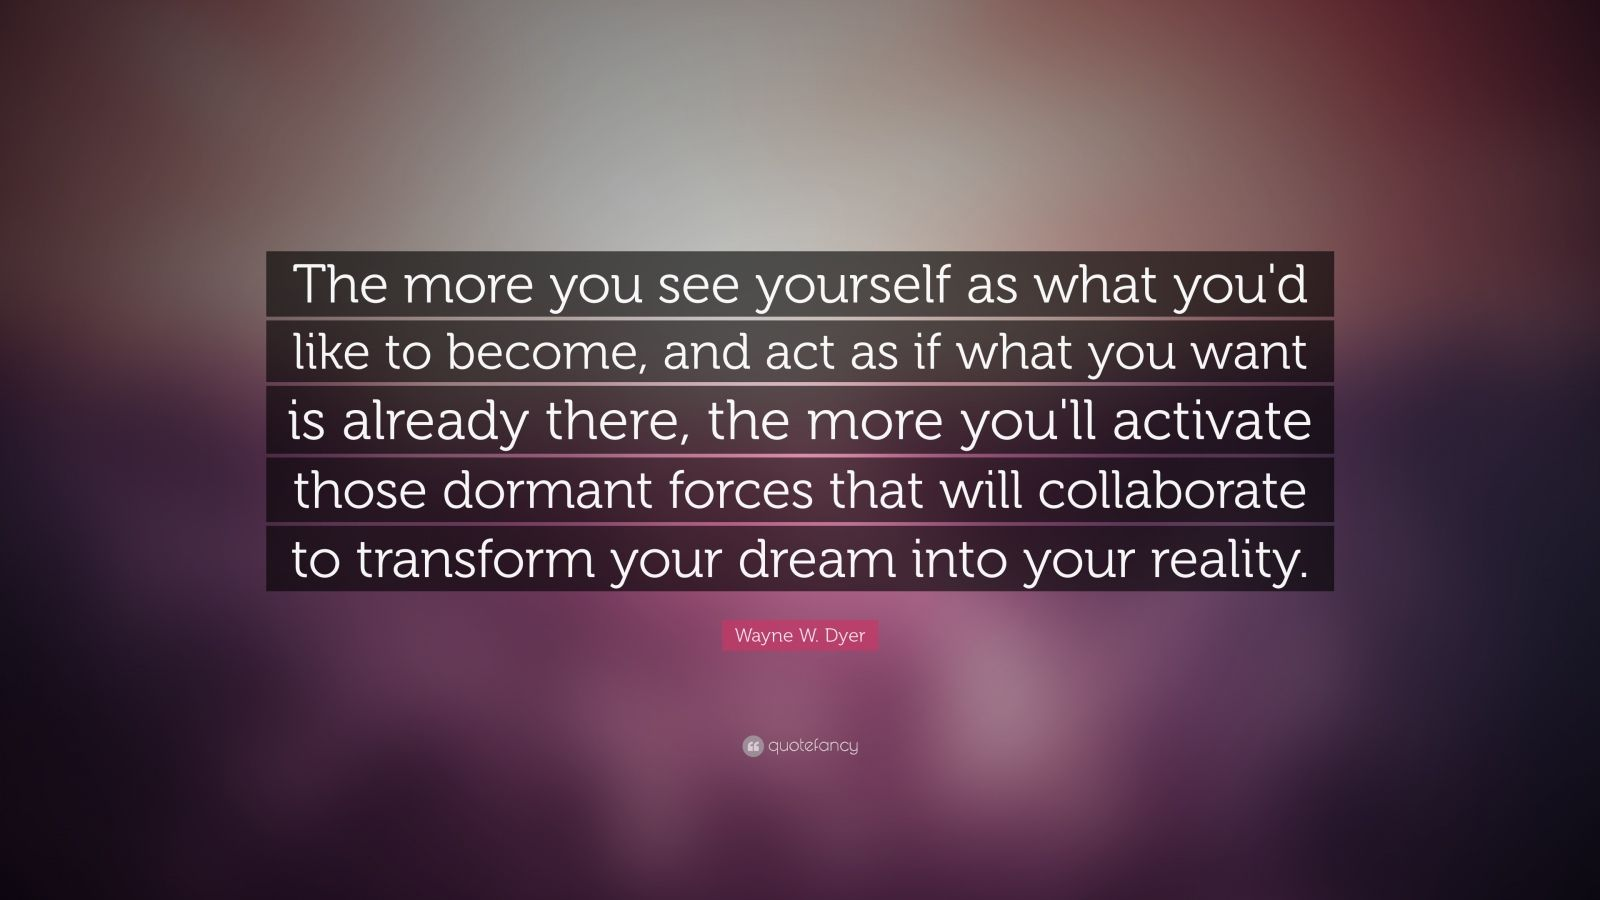 "Wayne W. Dyer Quote: ""The more you see yourself as what you'd like to become, and act as if what you want is already there, the more you'll activate those dormant forces that will collaborate to transform your dream into your reality."""